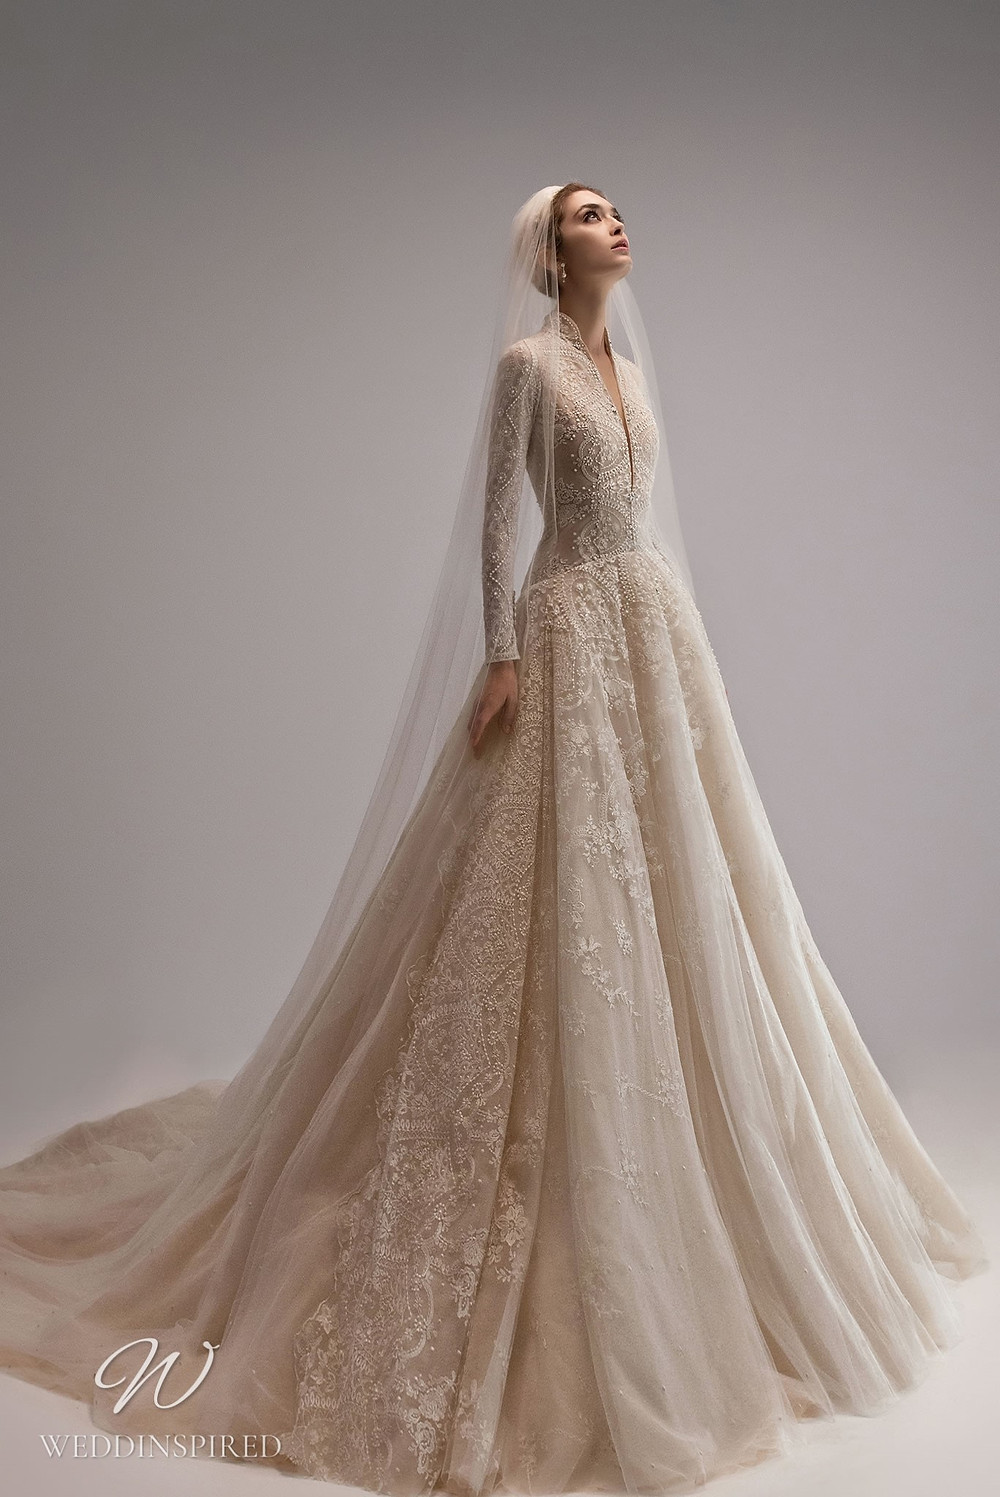 An Ersa Atelier 2021 ball gown wedding dress with a tulle skirt, long sleeves and beading